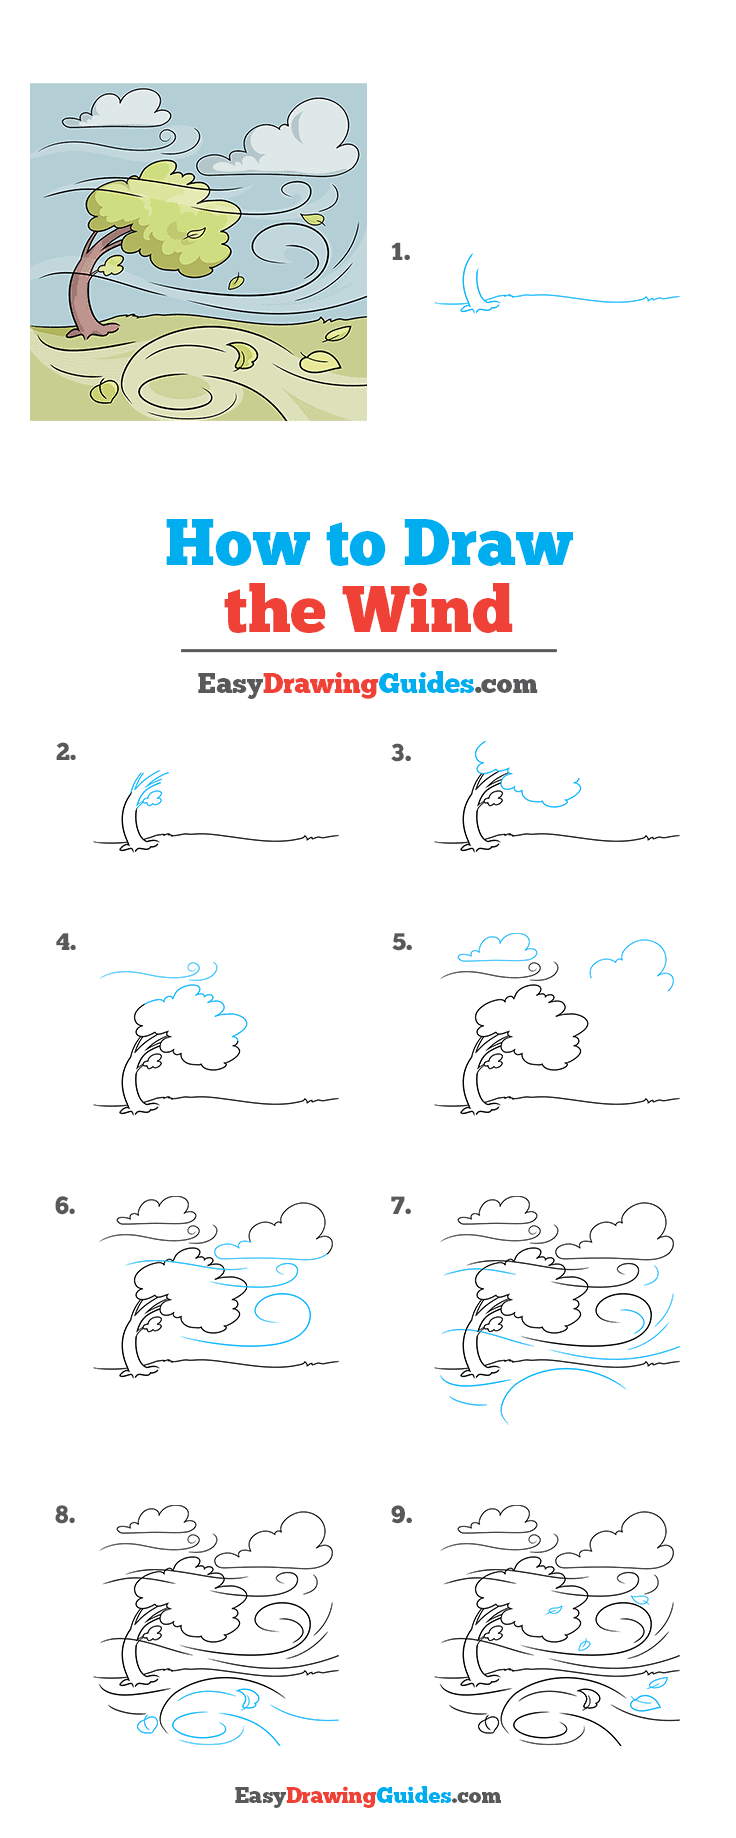 How to Draw the Wind Step by Step Tutorial Image